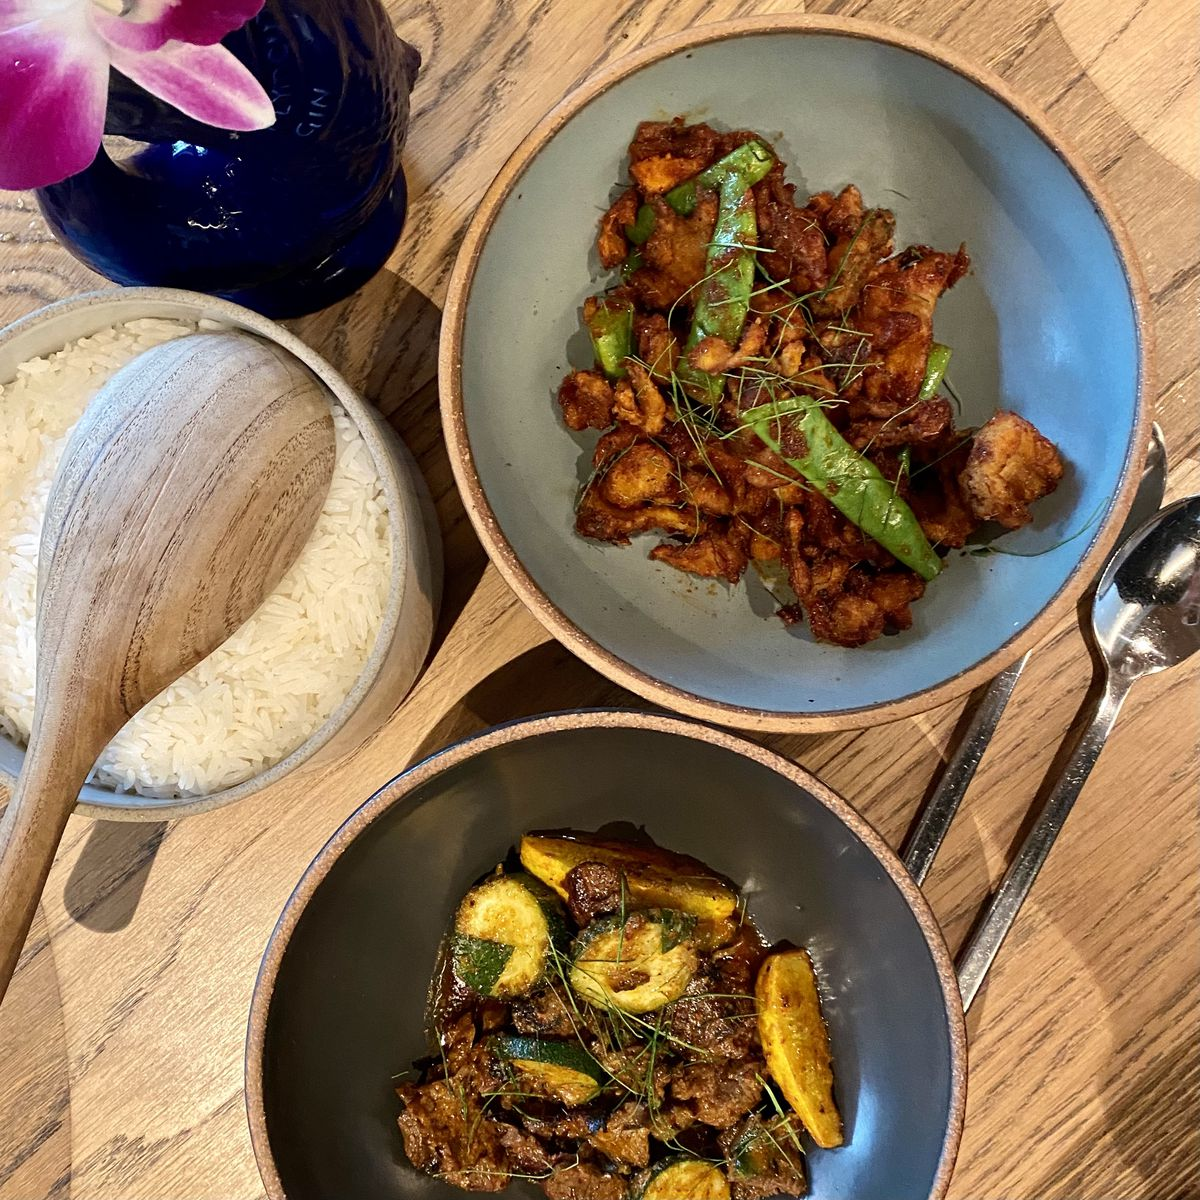 Fried mushrooms in curry paste and stir-fried skirt steak at Nari